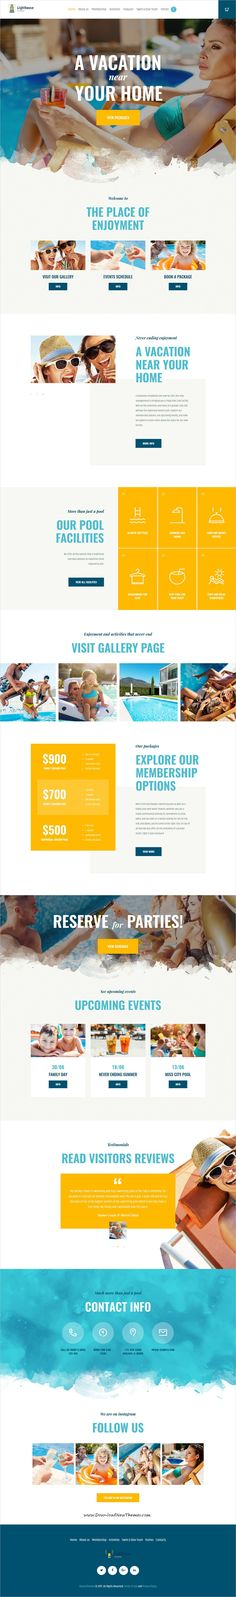 Playa is clean and modern design 3in1 responsive WordPress theme for city #beach, summer #resort, water park and pool club awesome website download now #webdesign